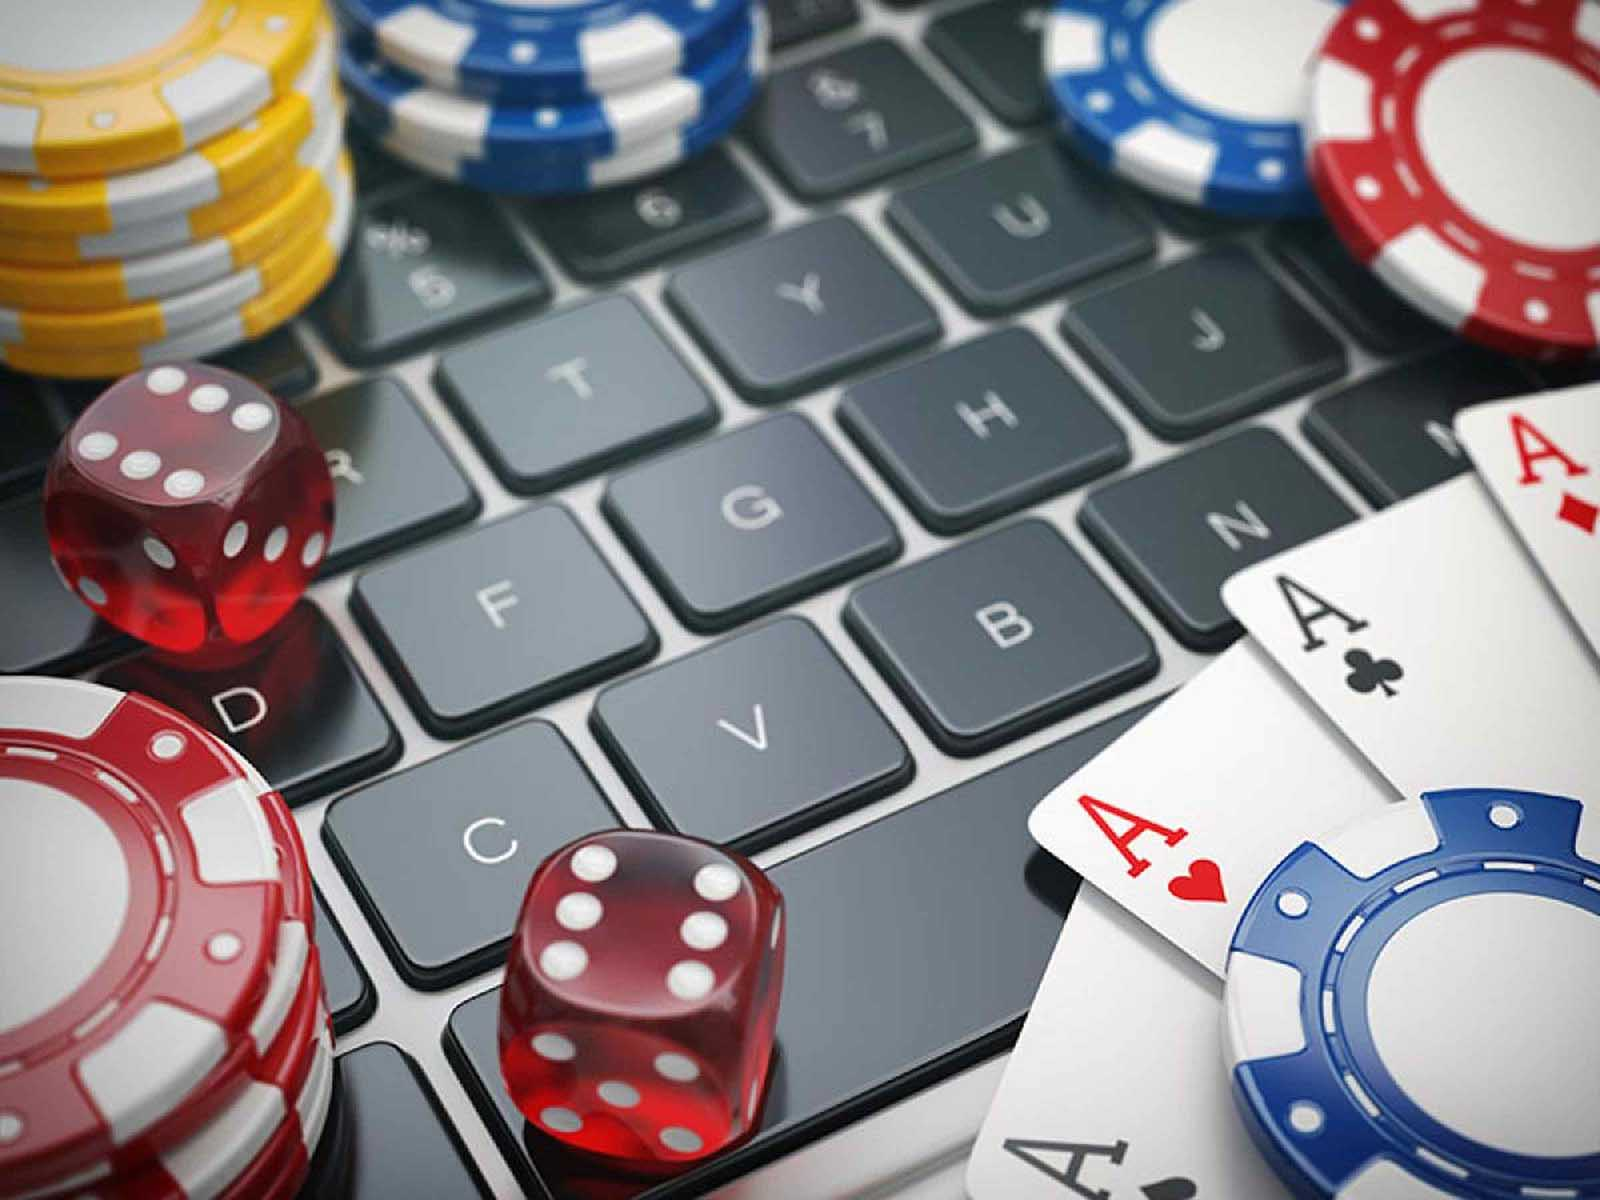 If you're looking to get into online gambling, you need to find the right online casino for you. Here's our guide to do so.